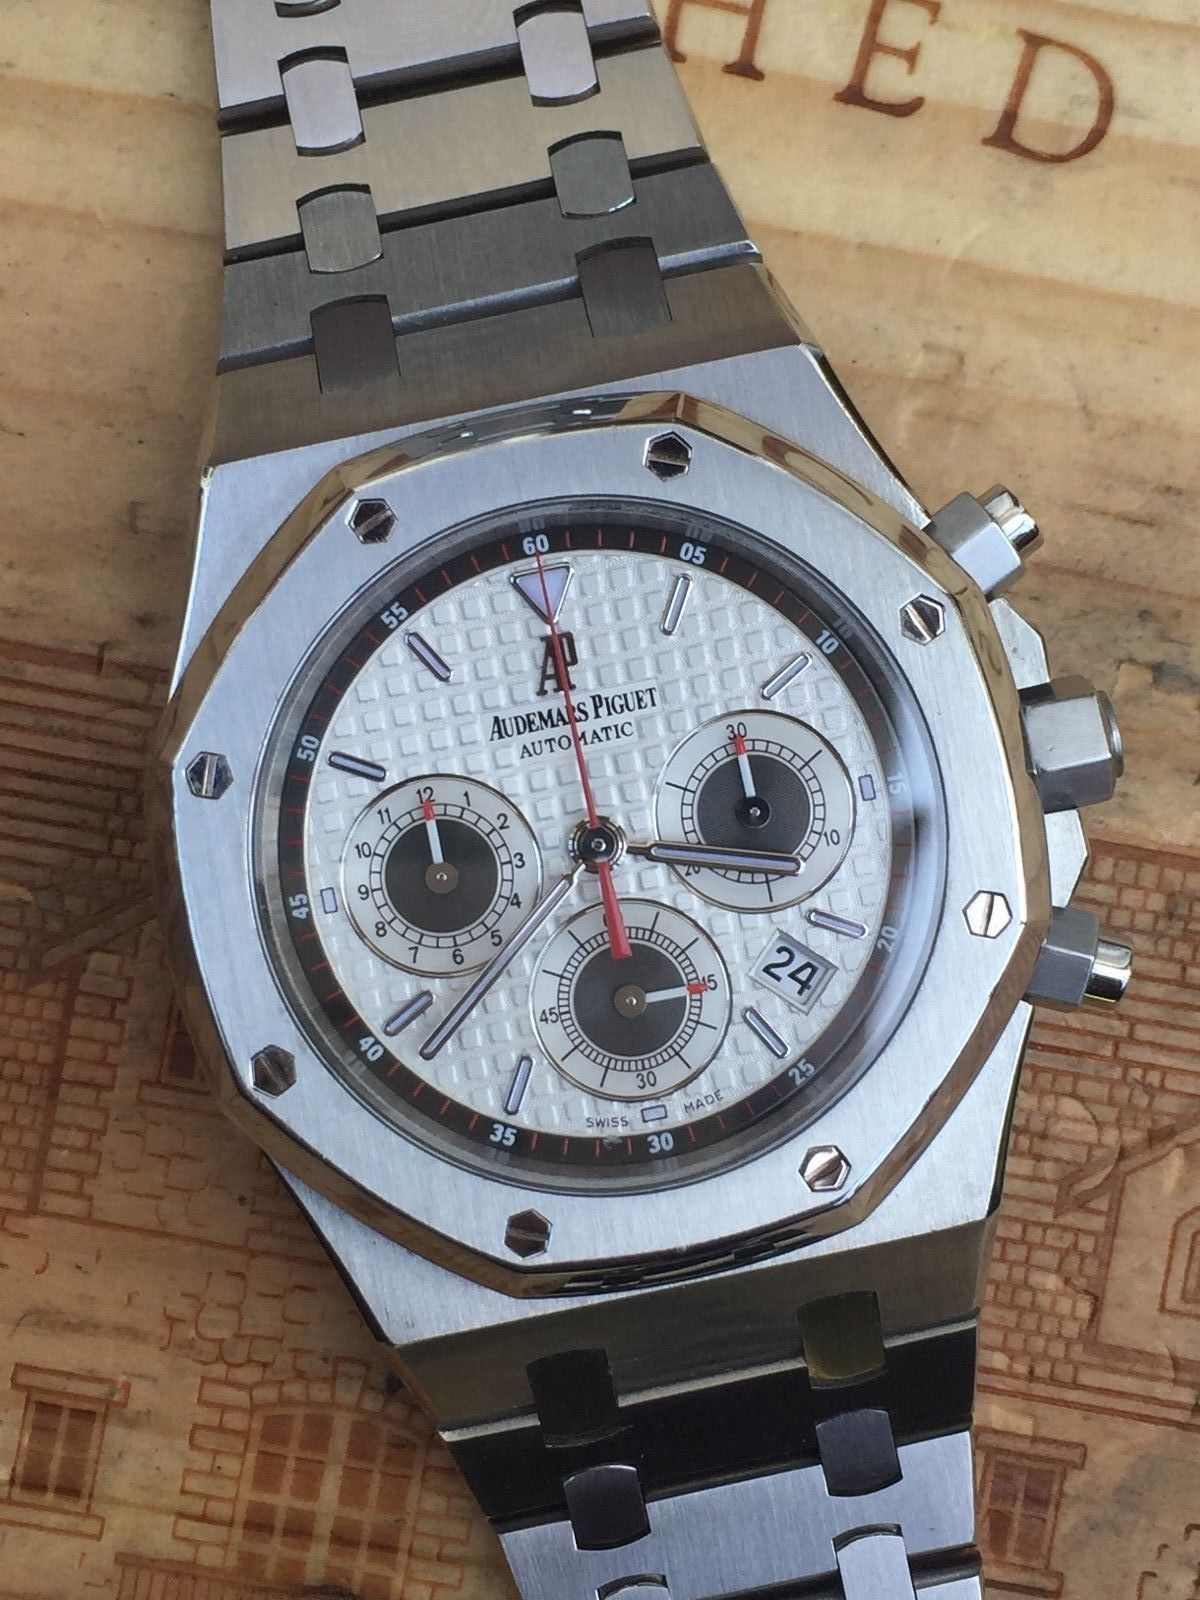 6f6c10a035f Audemars Piguet Royal Oak Chronograph Panda Dial 39mm Ref #26300ST ...